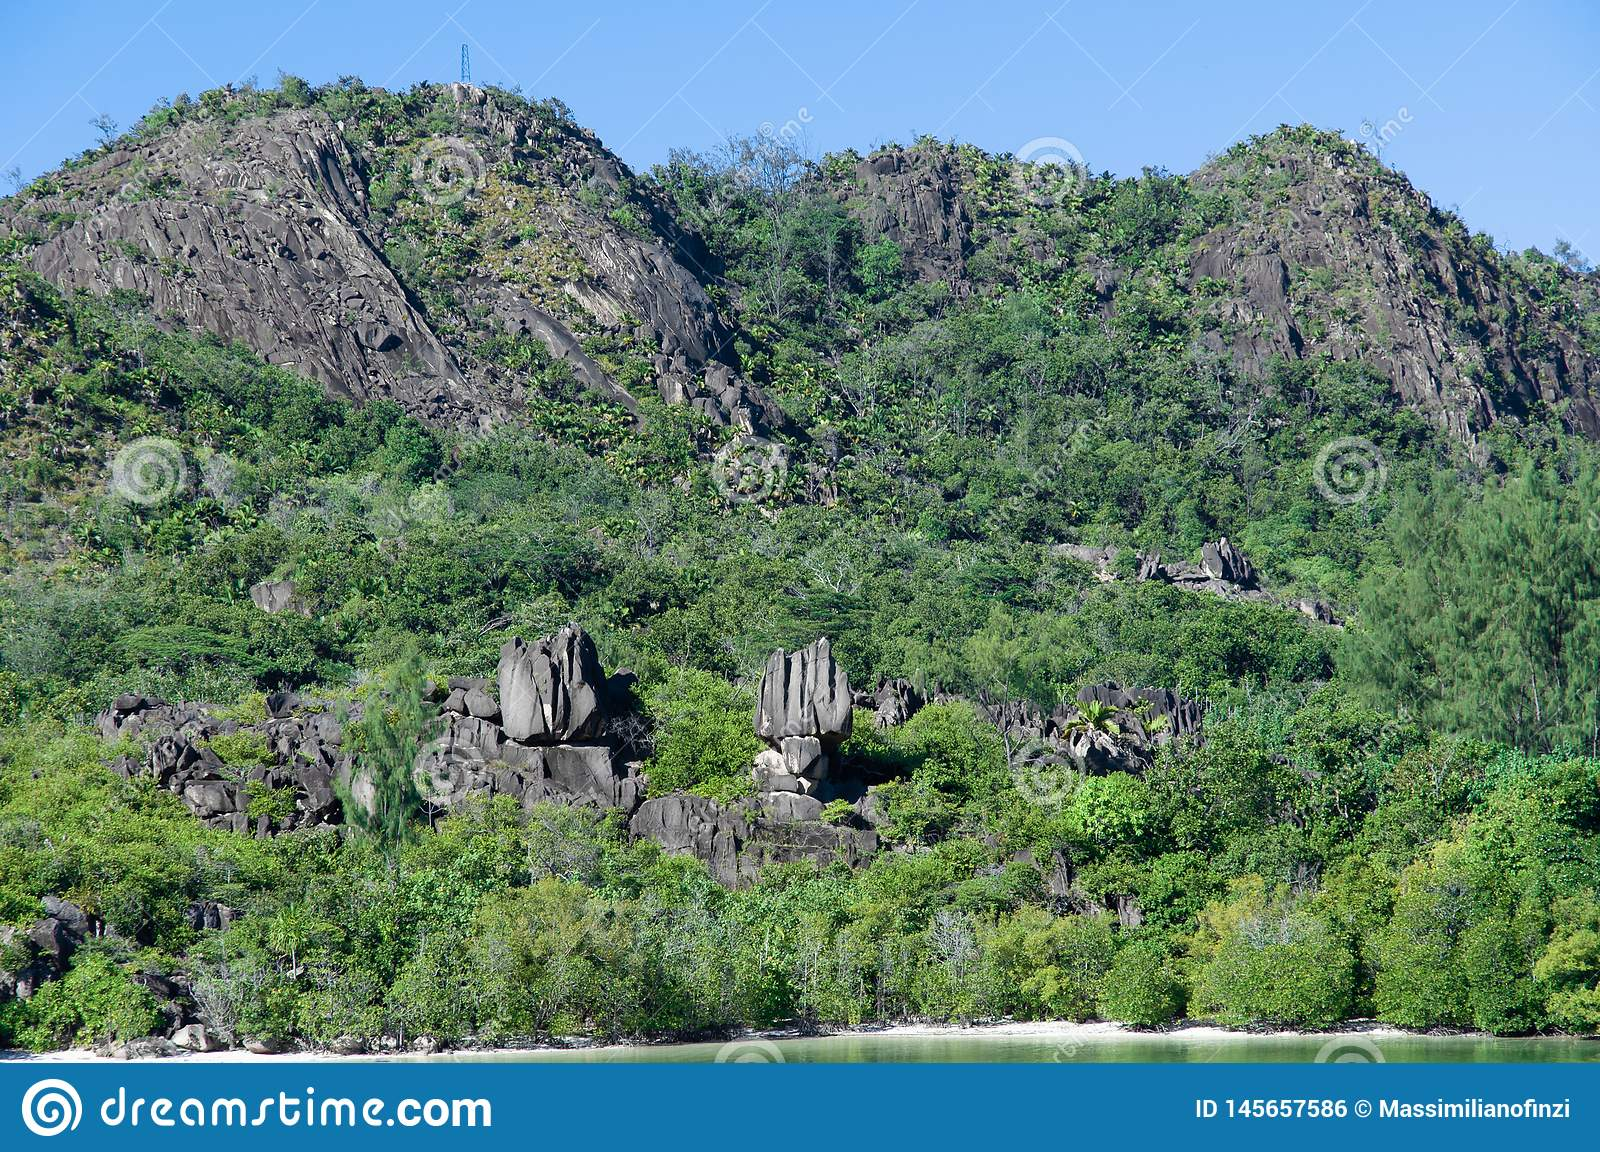 Lava stone formation, monolith, in the natural park of curieuse island, Seychelles